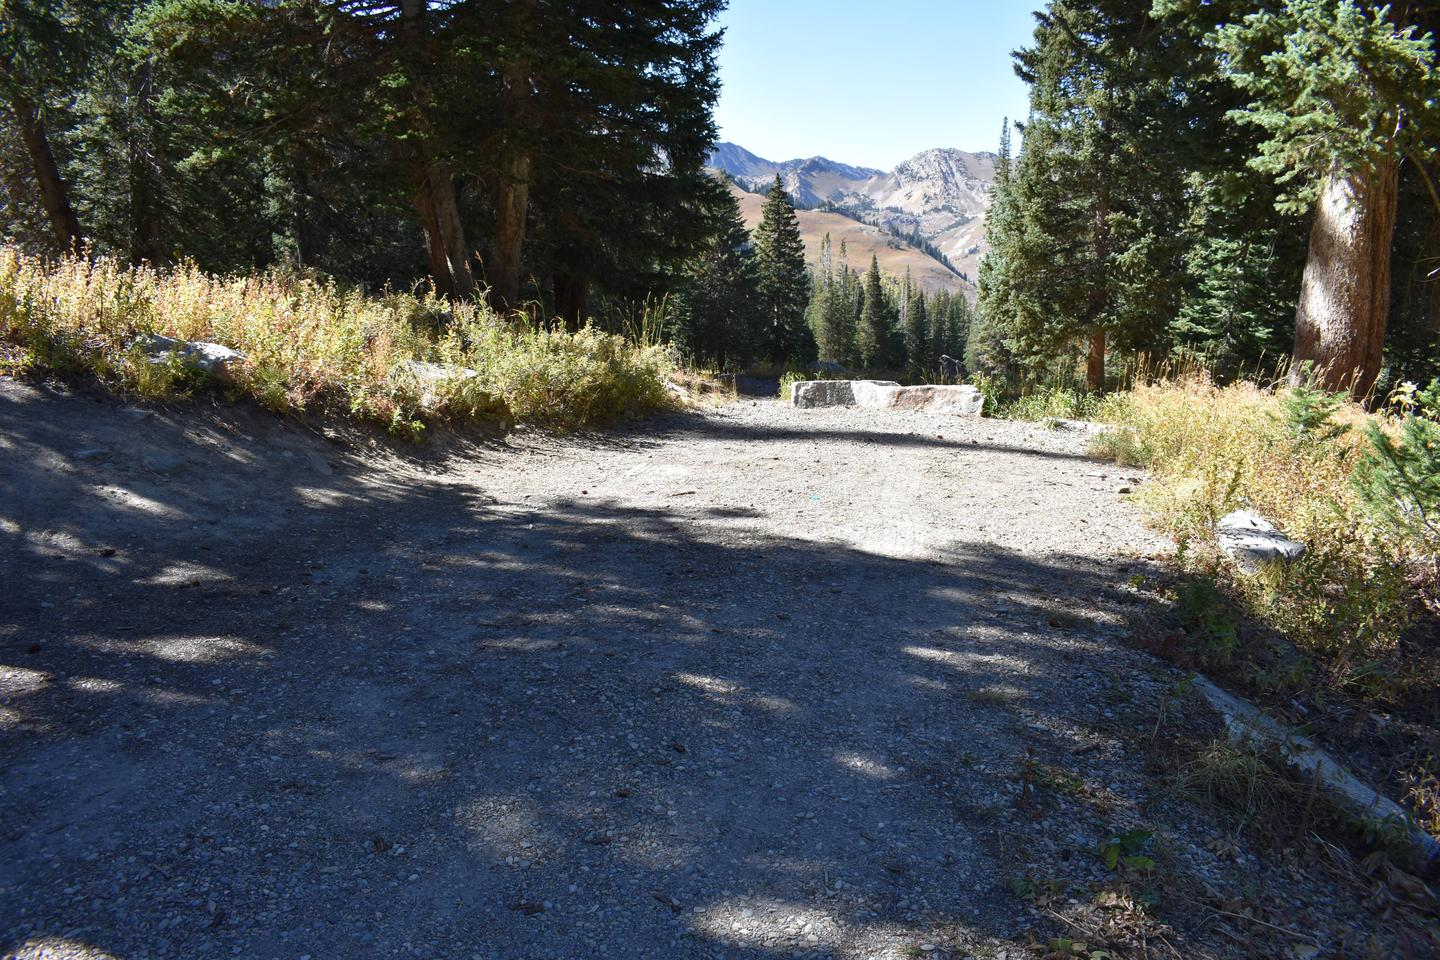 Site 9Albion Basin, Little Cottonwood Canyon